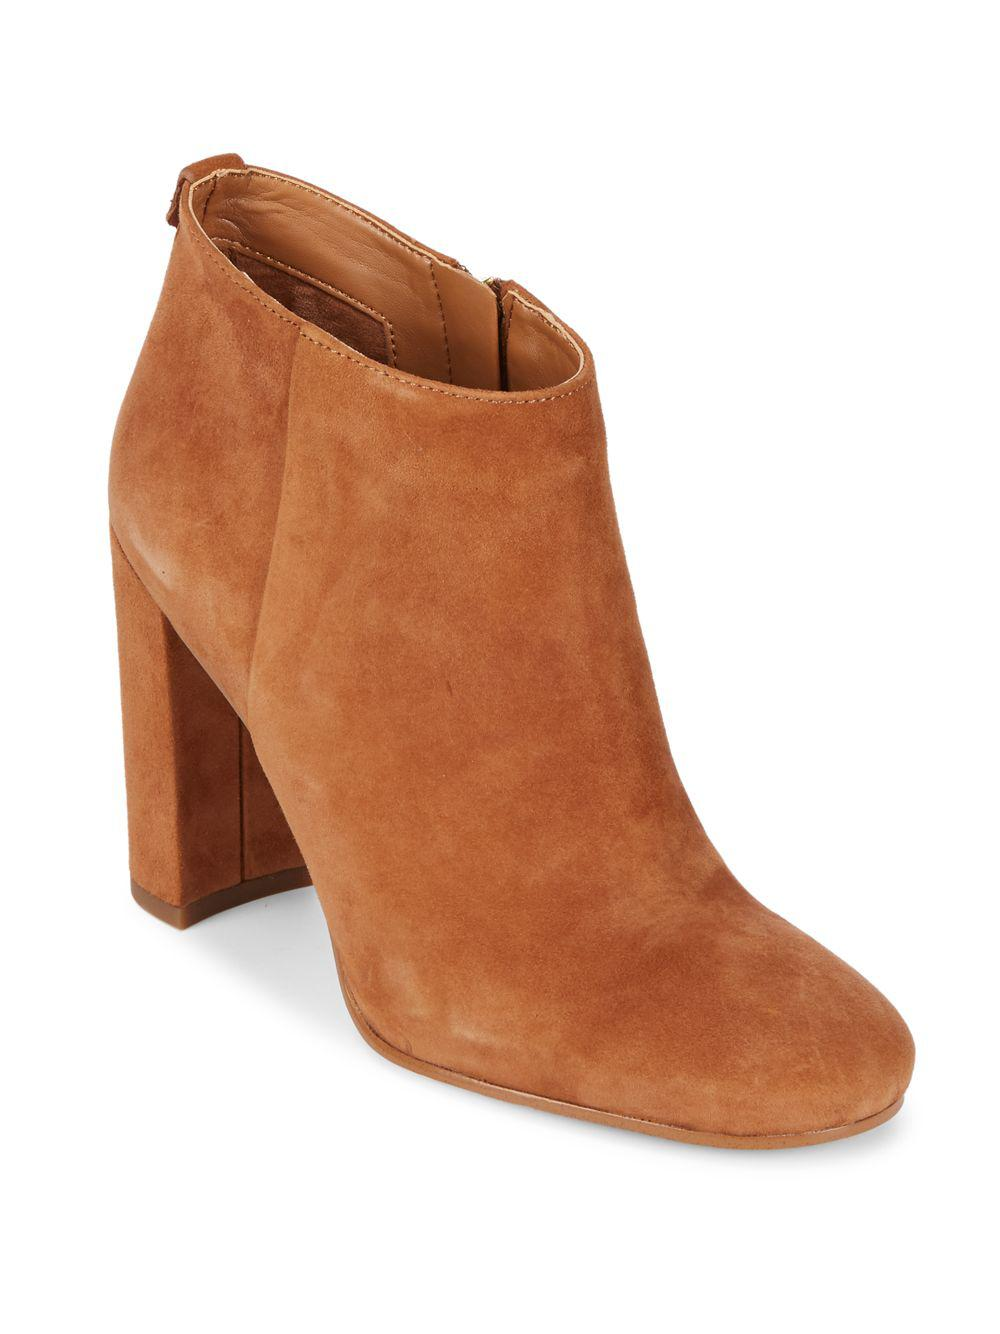 676aae187 Lyst - Sam Edelman Cambell Leather Booties in Brown